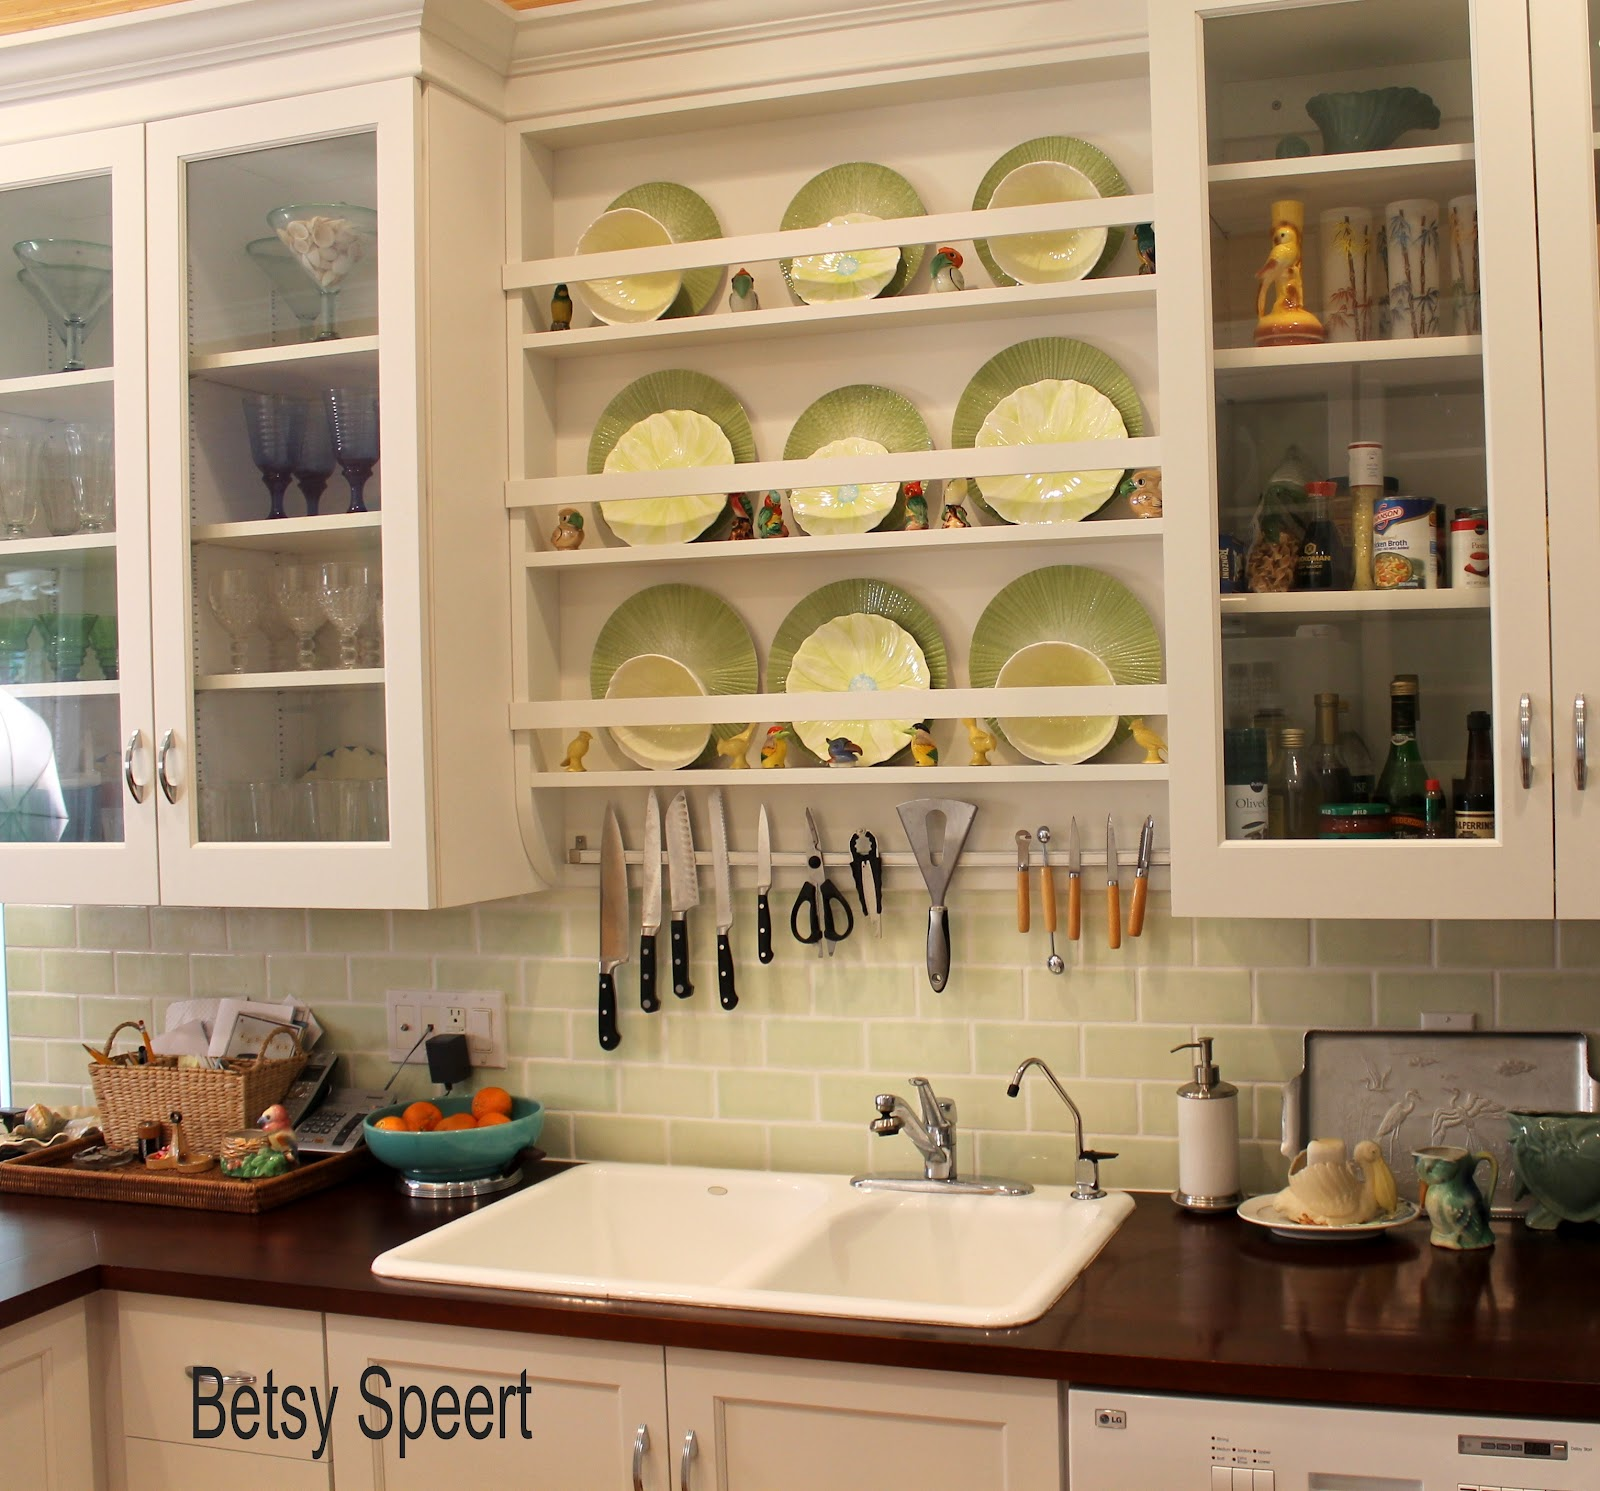 Plate Rack above Sink